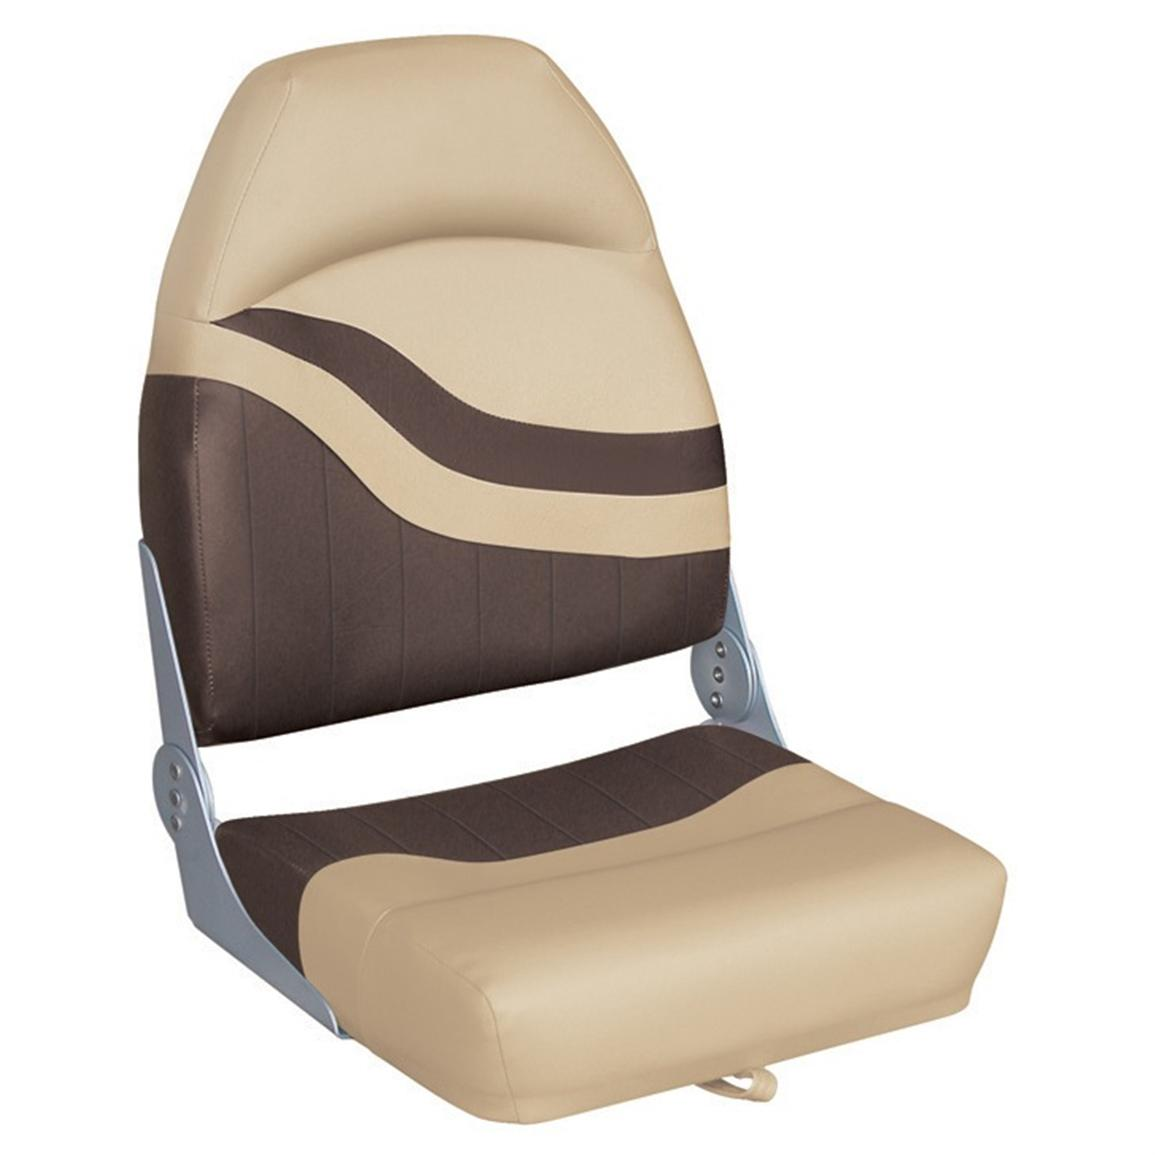 Wise® Weekender Series Boat Seat, Sand Brown